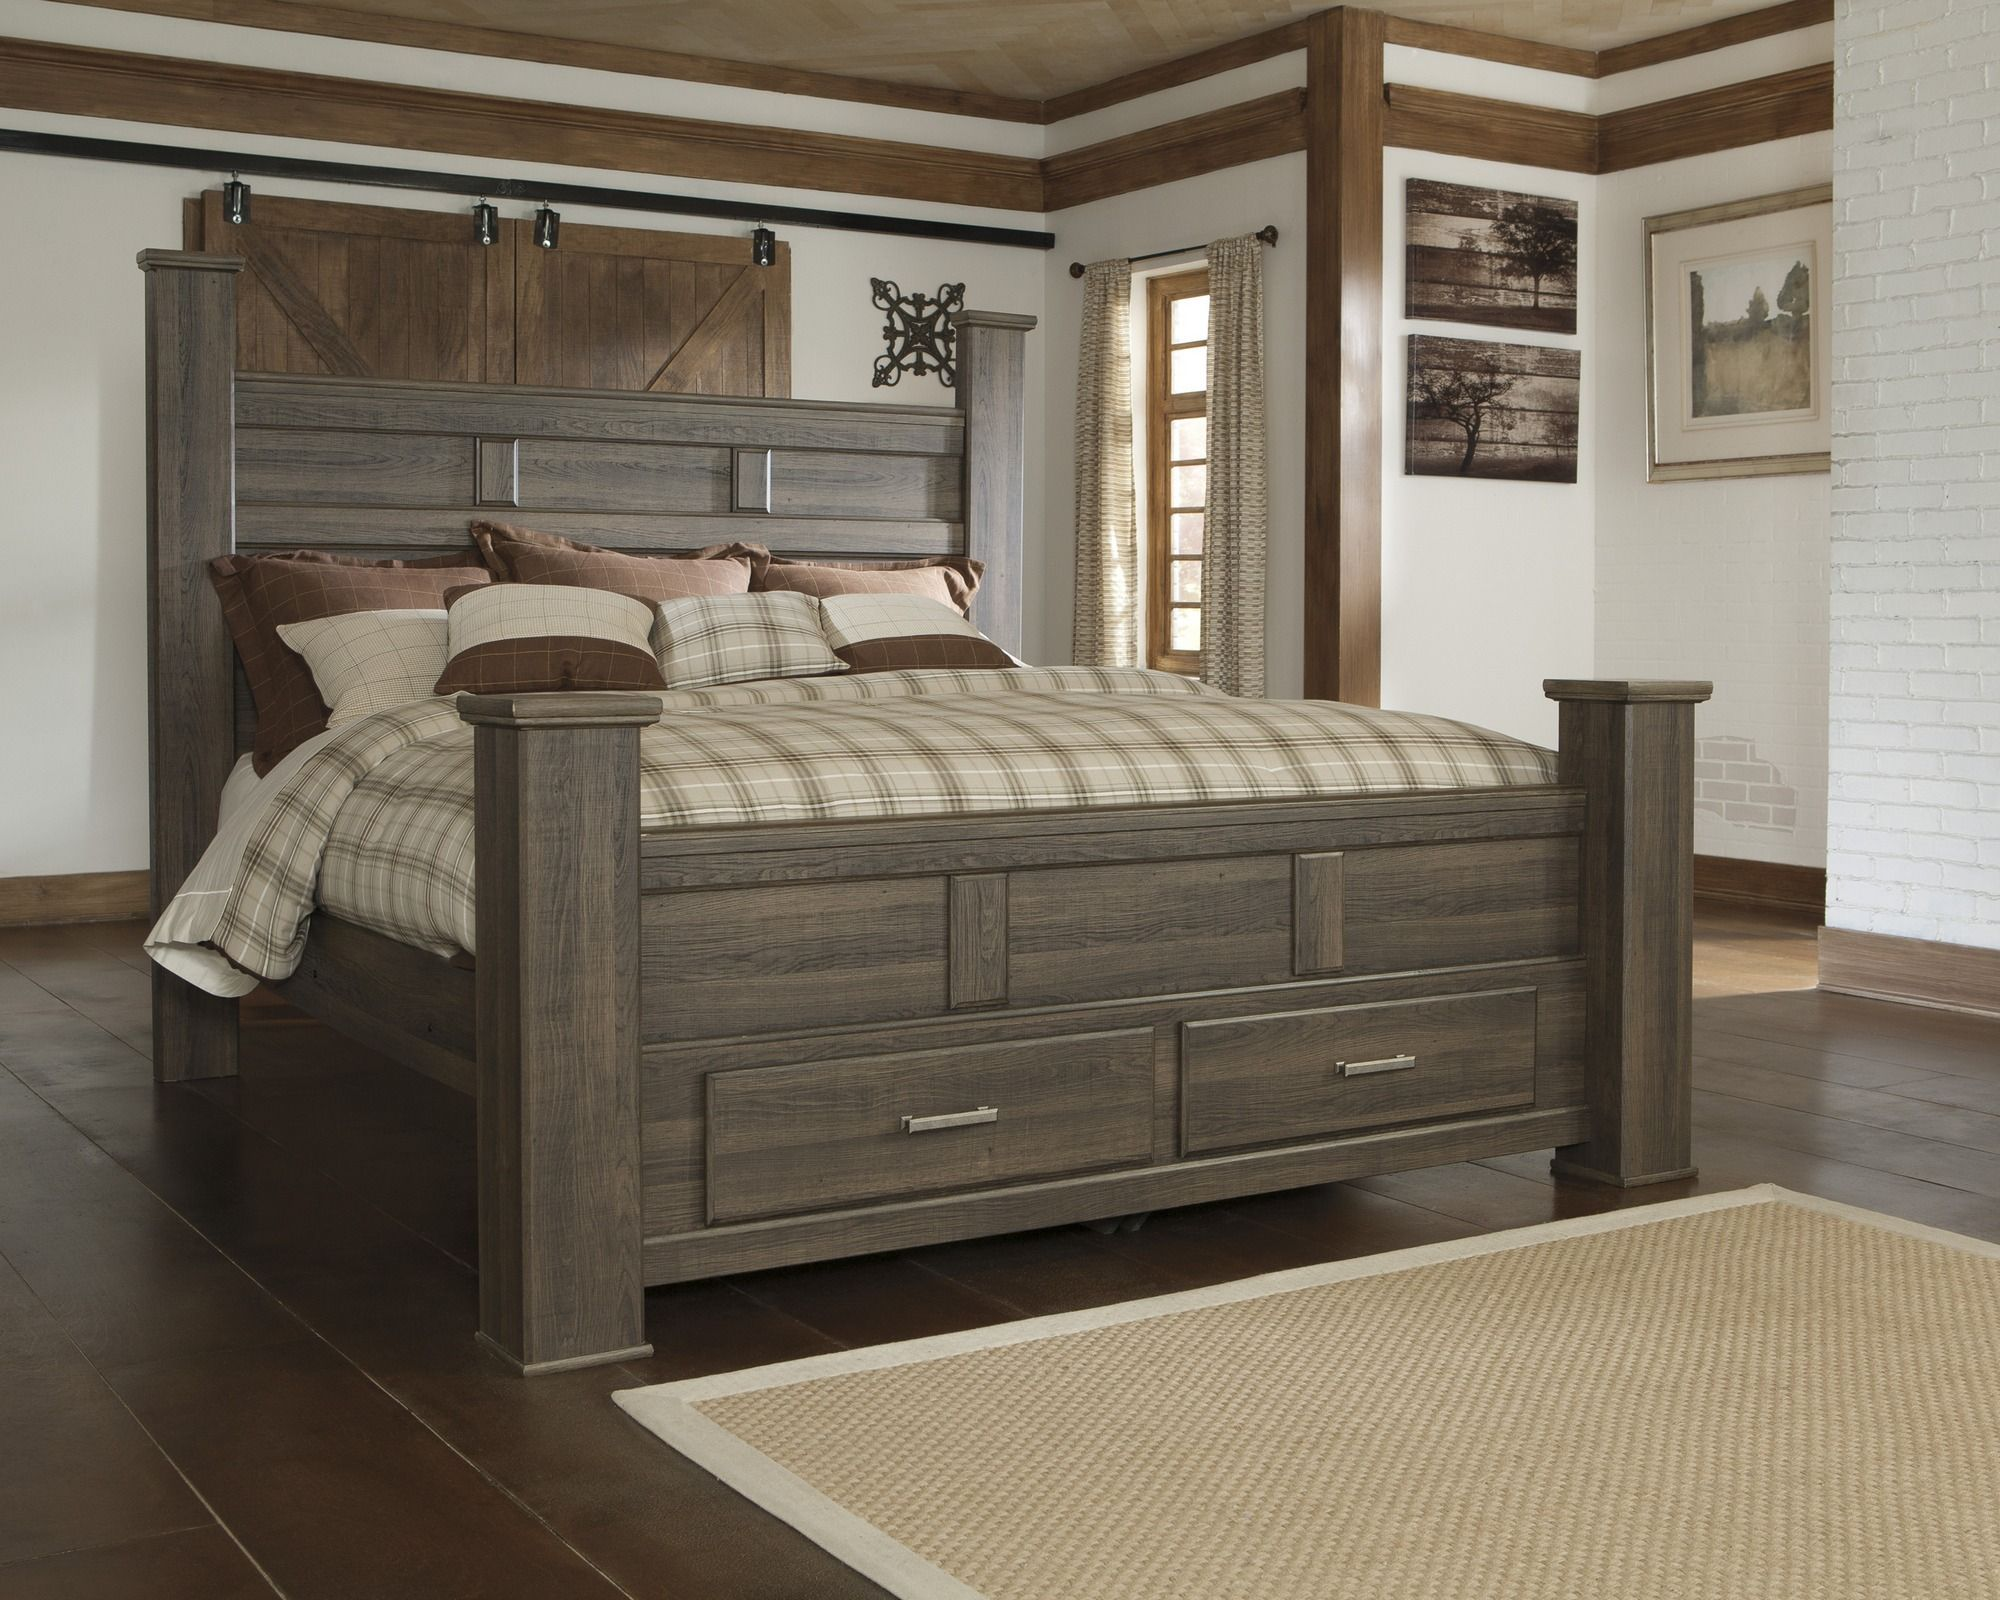 BS Signature By Ashley Juararo King Poster Bed With - Big sandy bedroom furniture